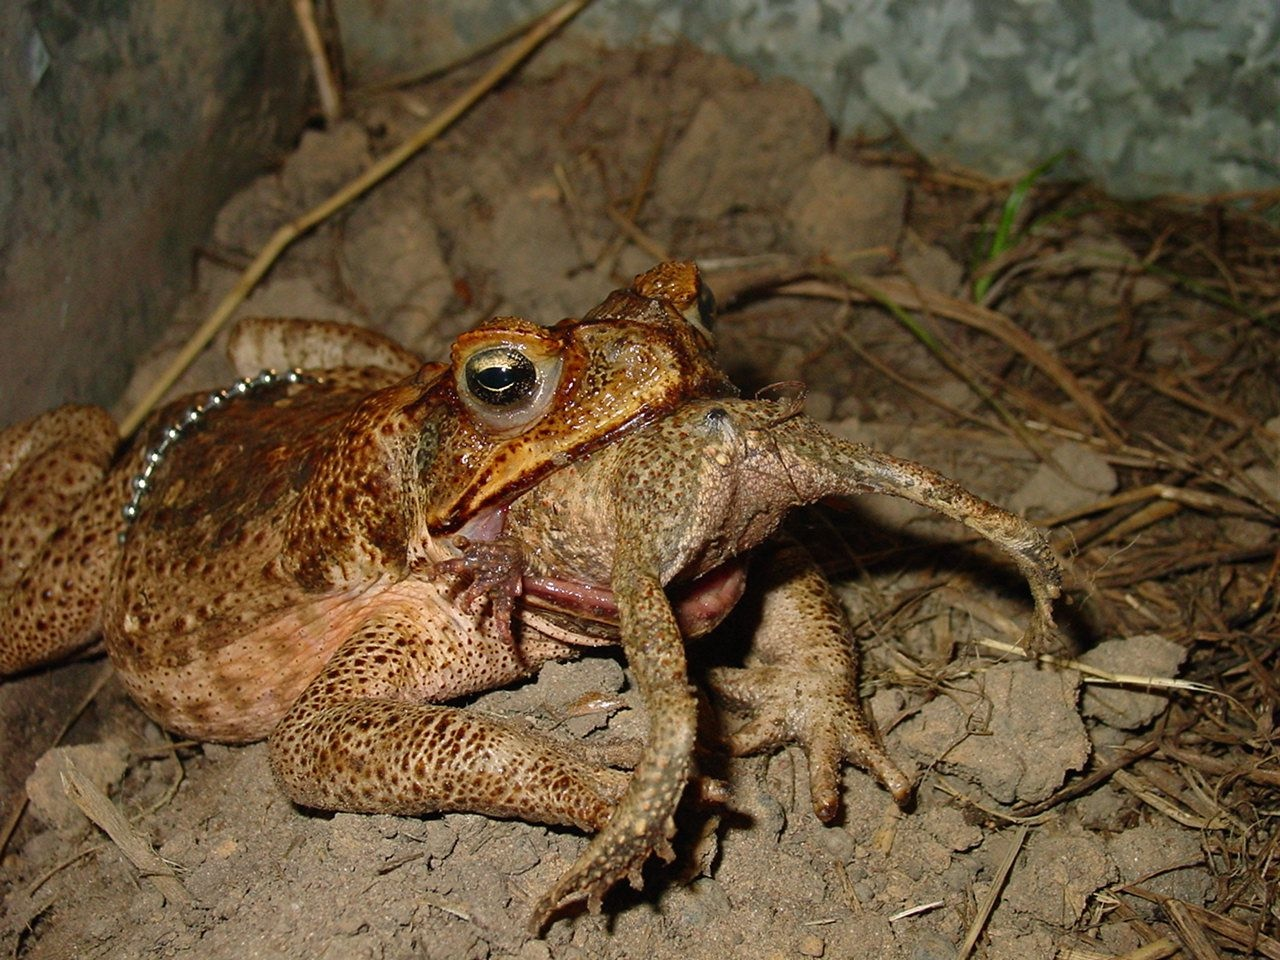 Toad eating a smaller toad.